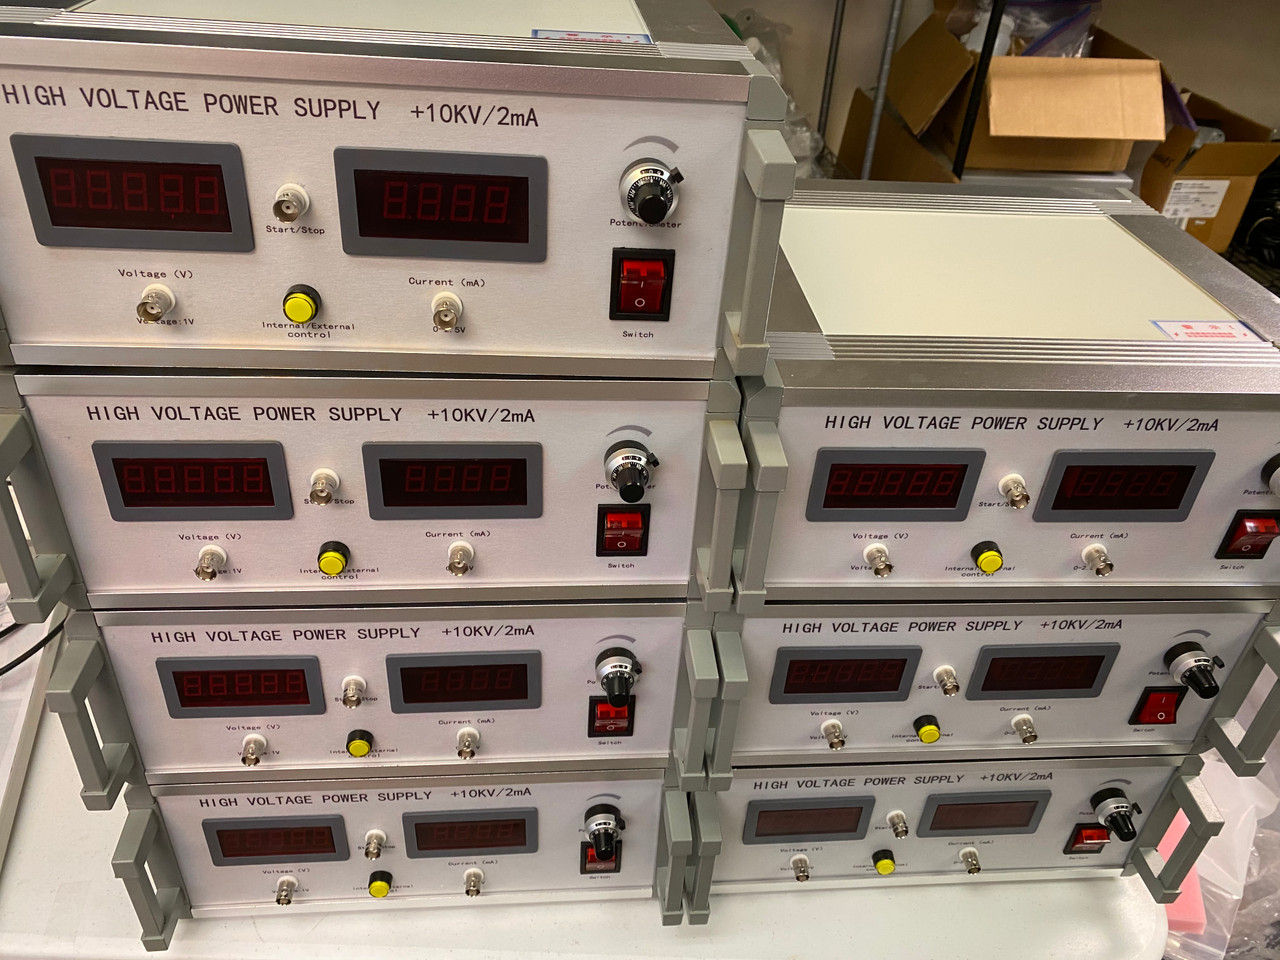 New High Voltage Power Supply +10 kV, 2 mA, Current Limit, With Cables